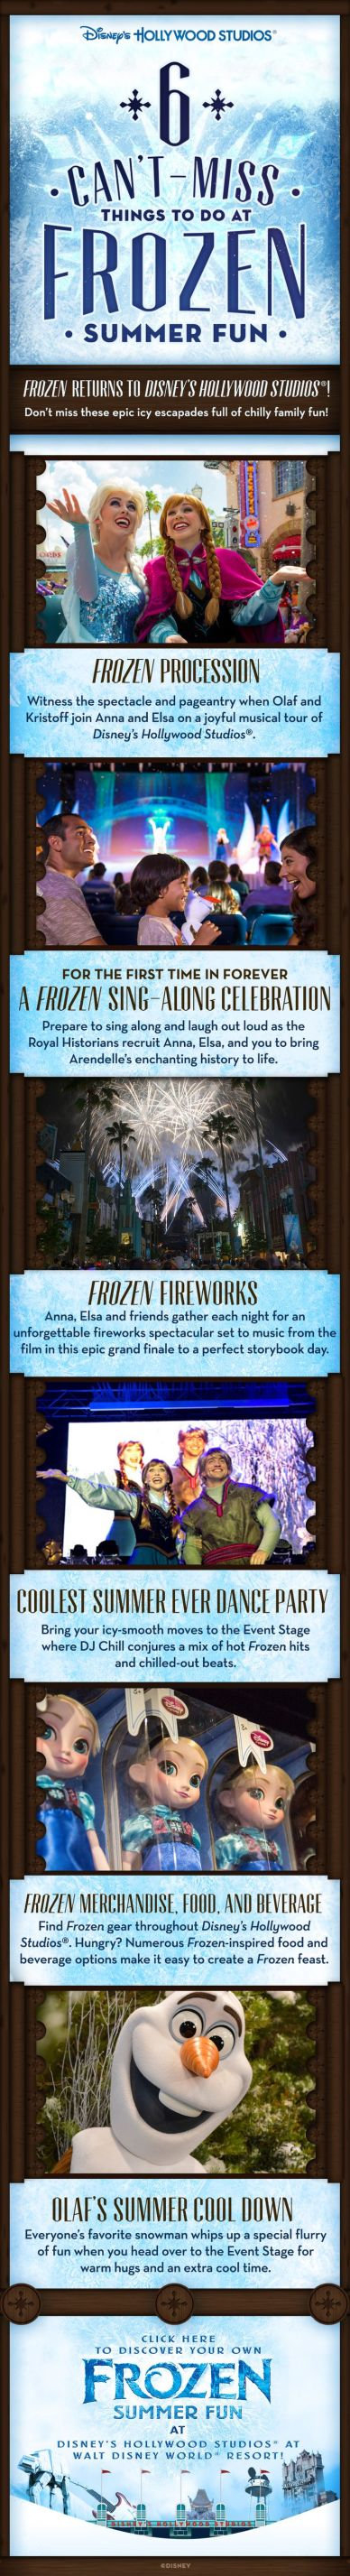 All the things to do this summer at DHS!